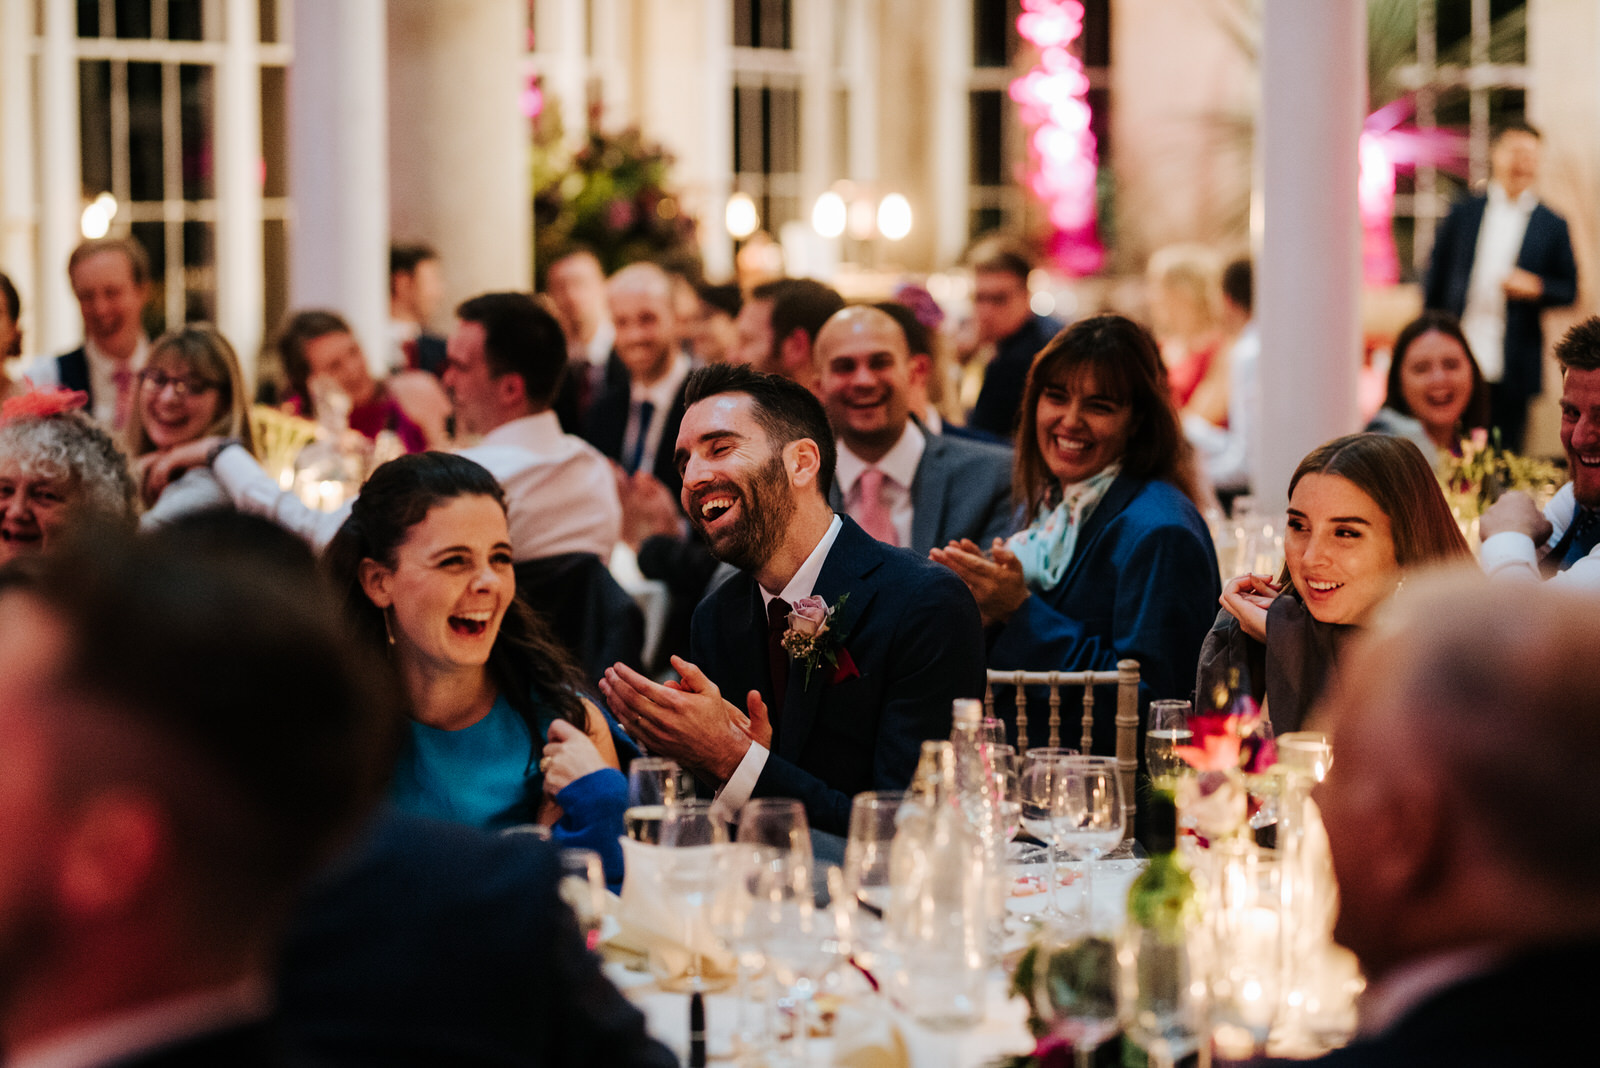 Groom's brother and sister can't contain laughter during his wedding speech